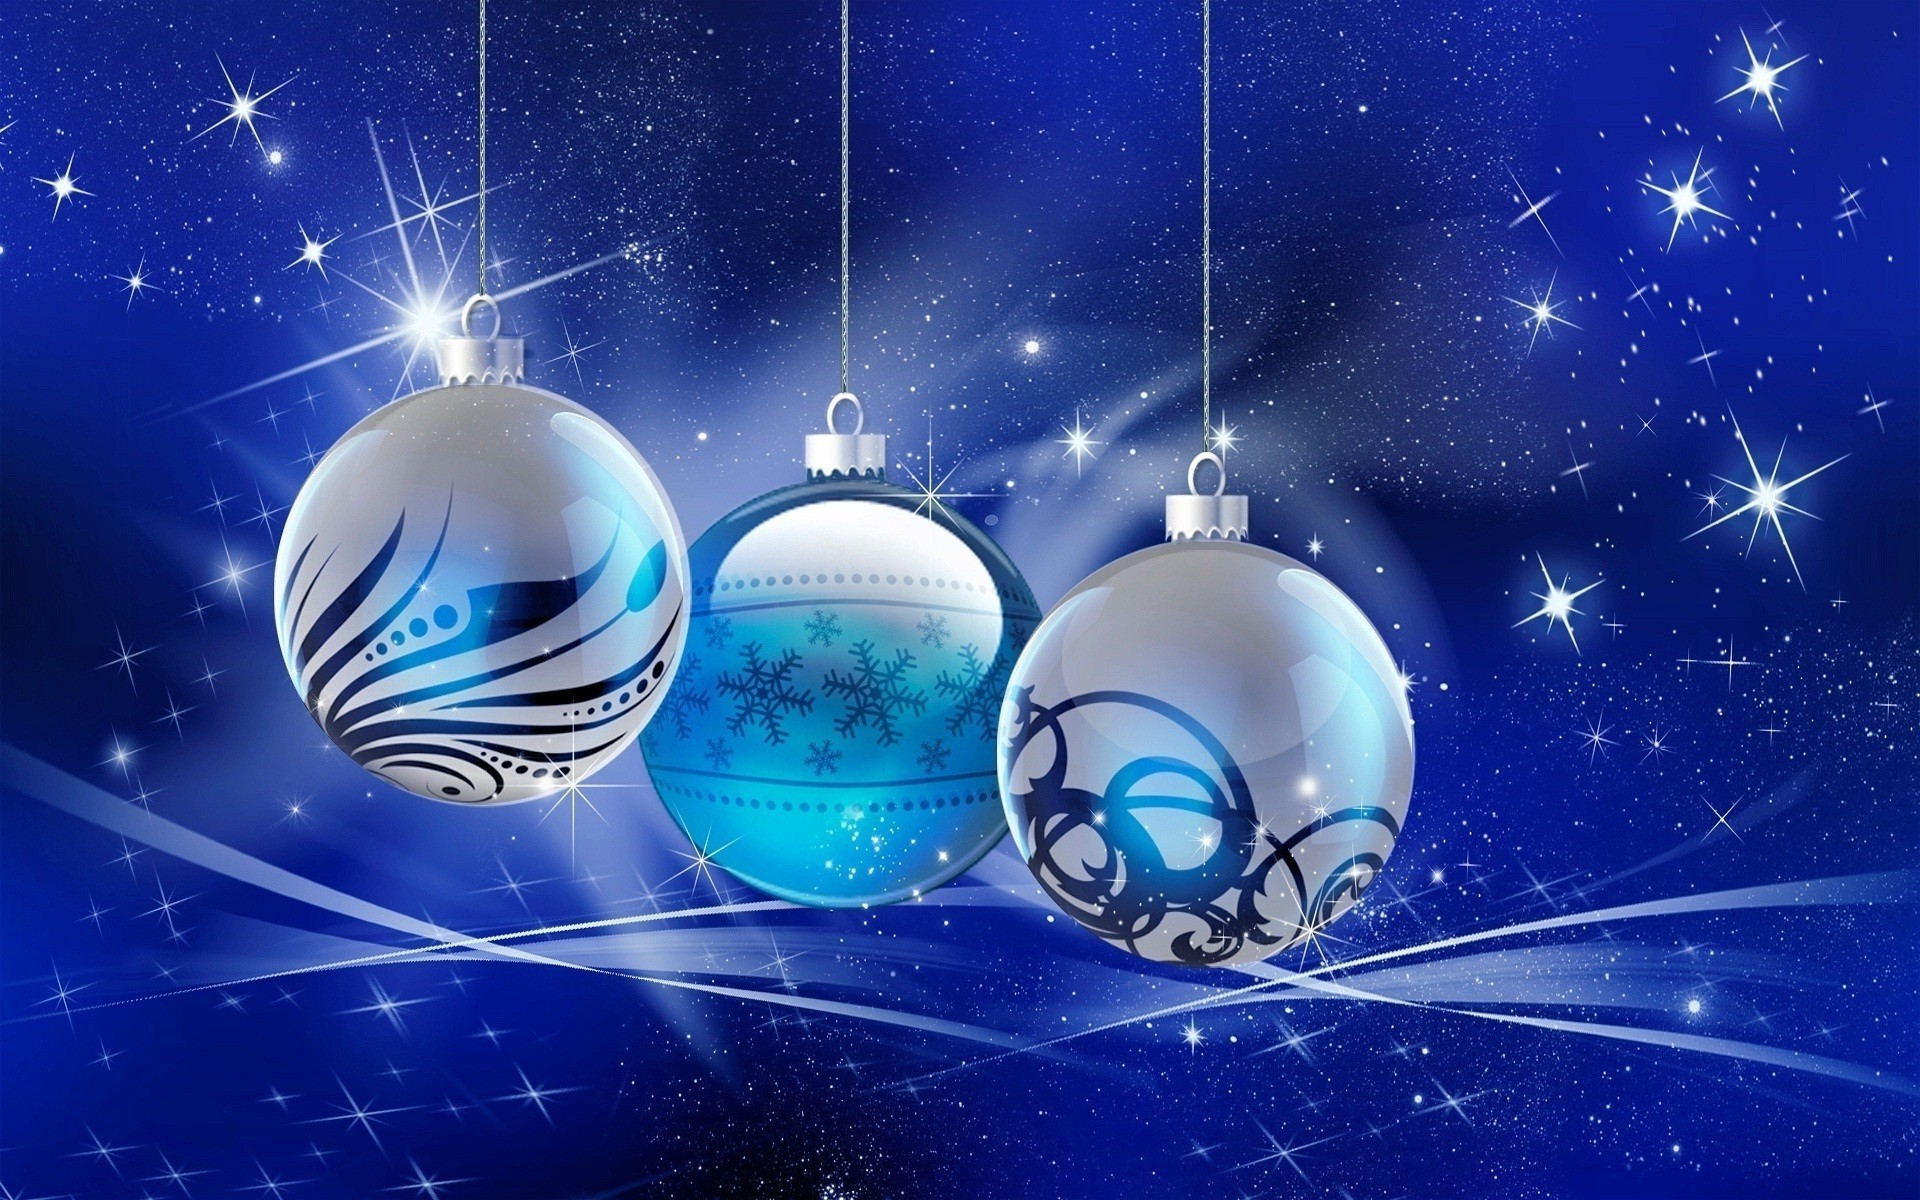 new year sphere ball-shaped christmas space ball desktop planet merry design abstract illustration moon luminescence science celebration light shining astronomy winter